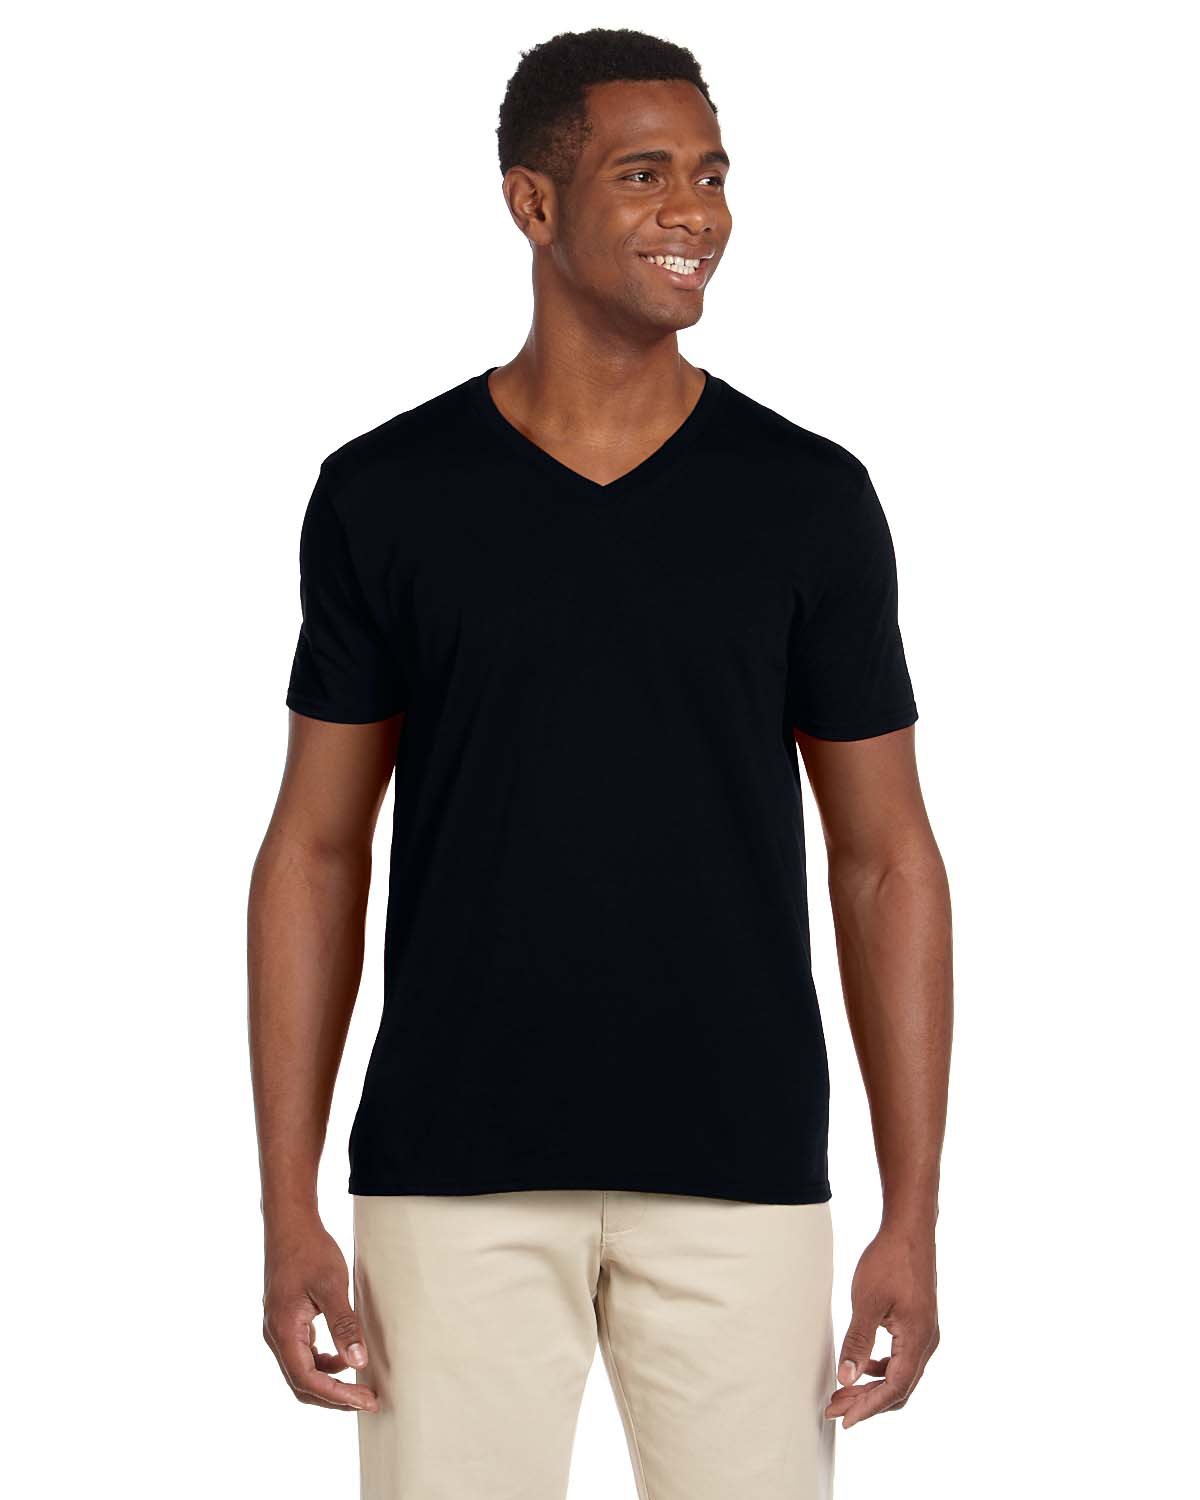 New gildan men 39 s 4 5 oz softstyle v neck t shirt short for Gildan v neck t shirts for men